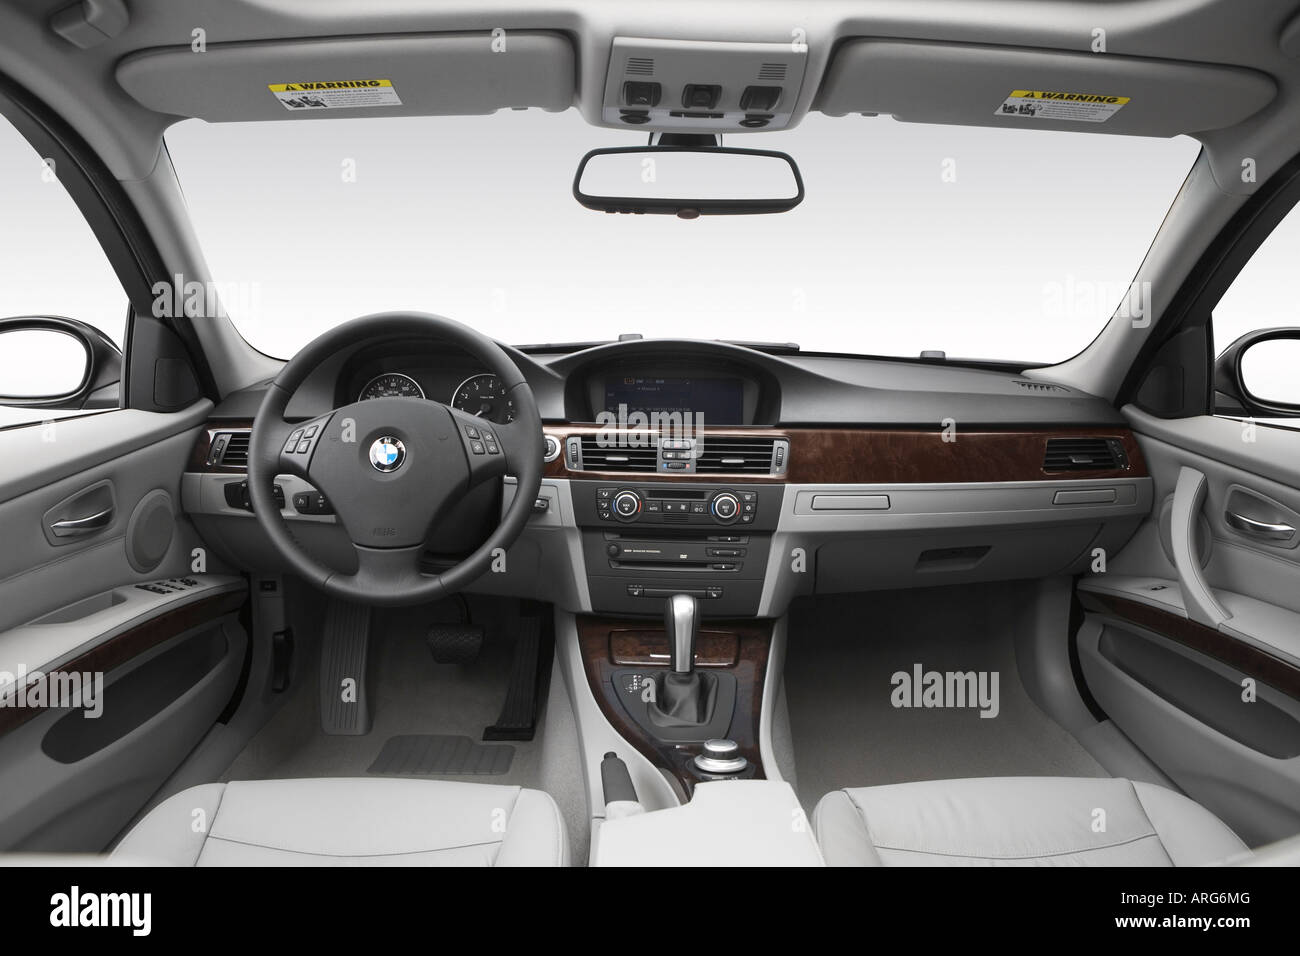 2007 Bmw 3 Series 328i In Gray Dashboard Center Console Gear Stock Photo Alamy